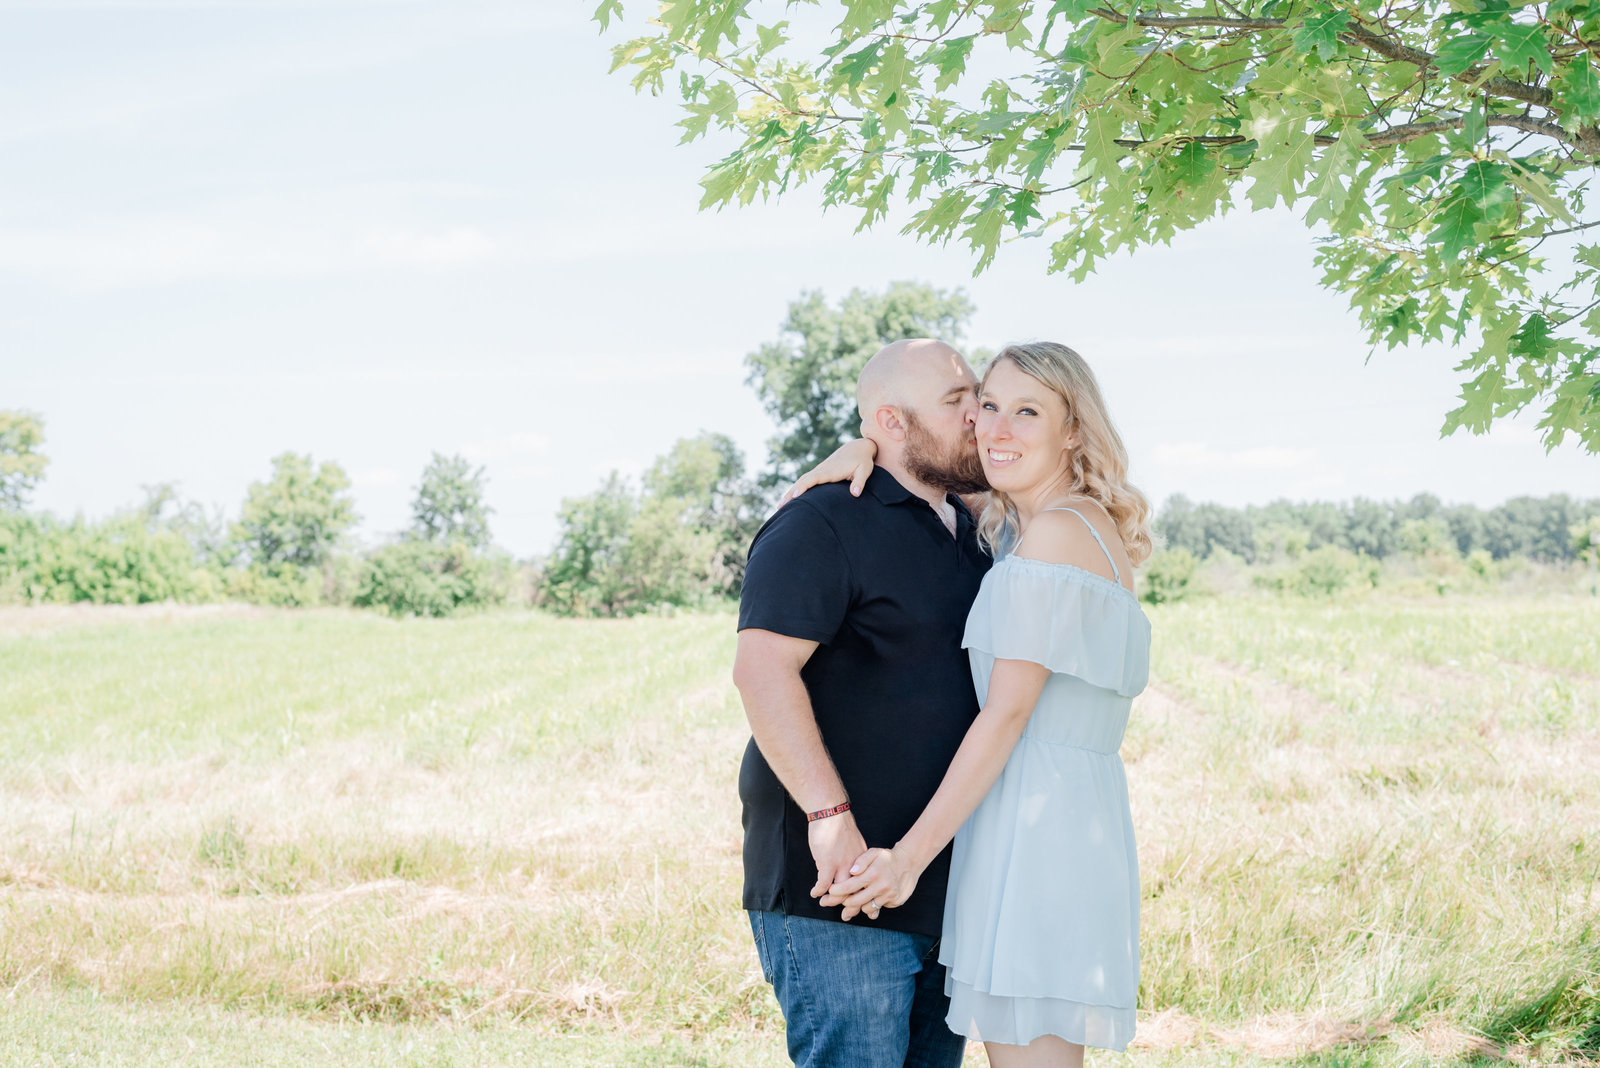 EngagementPictures-76